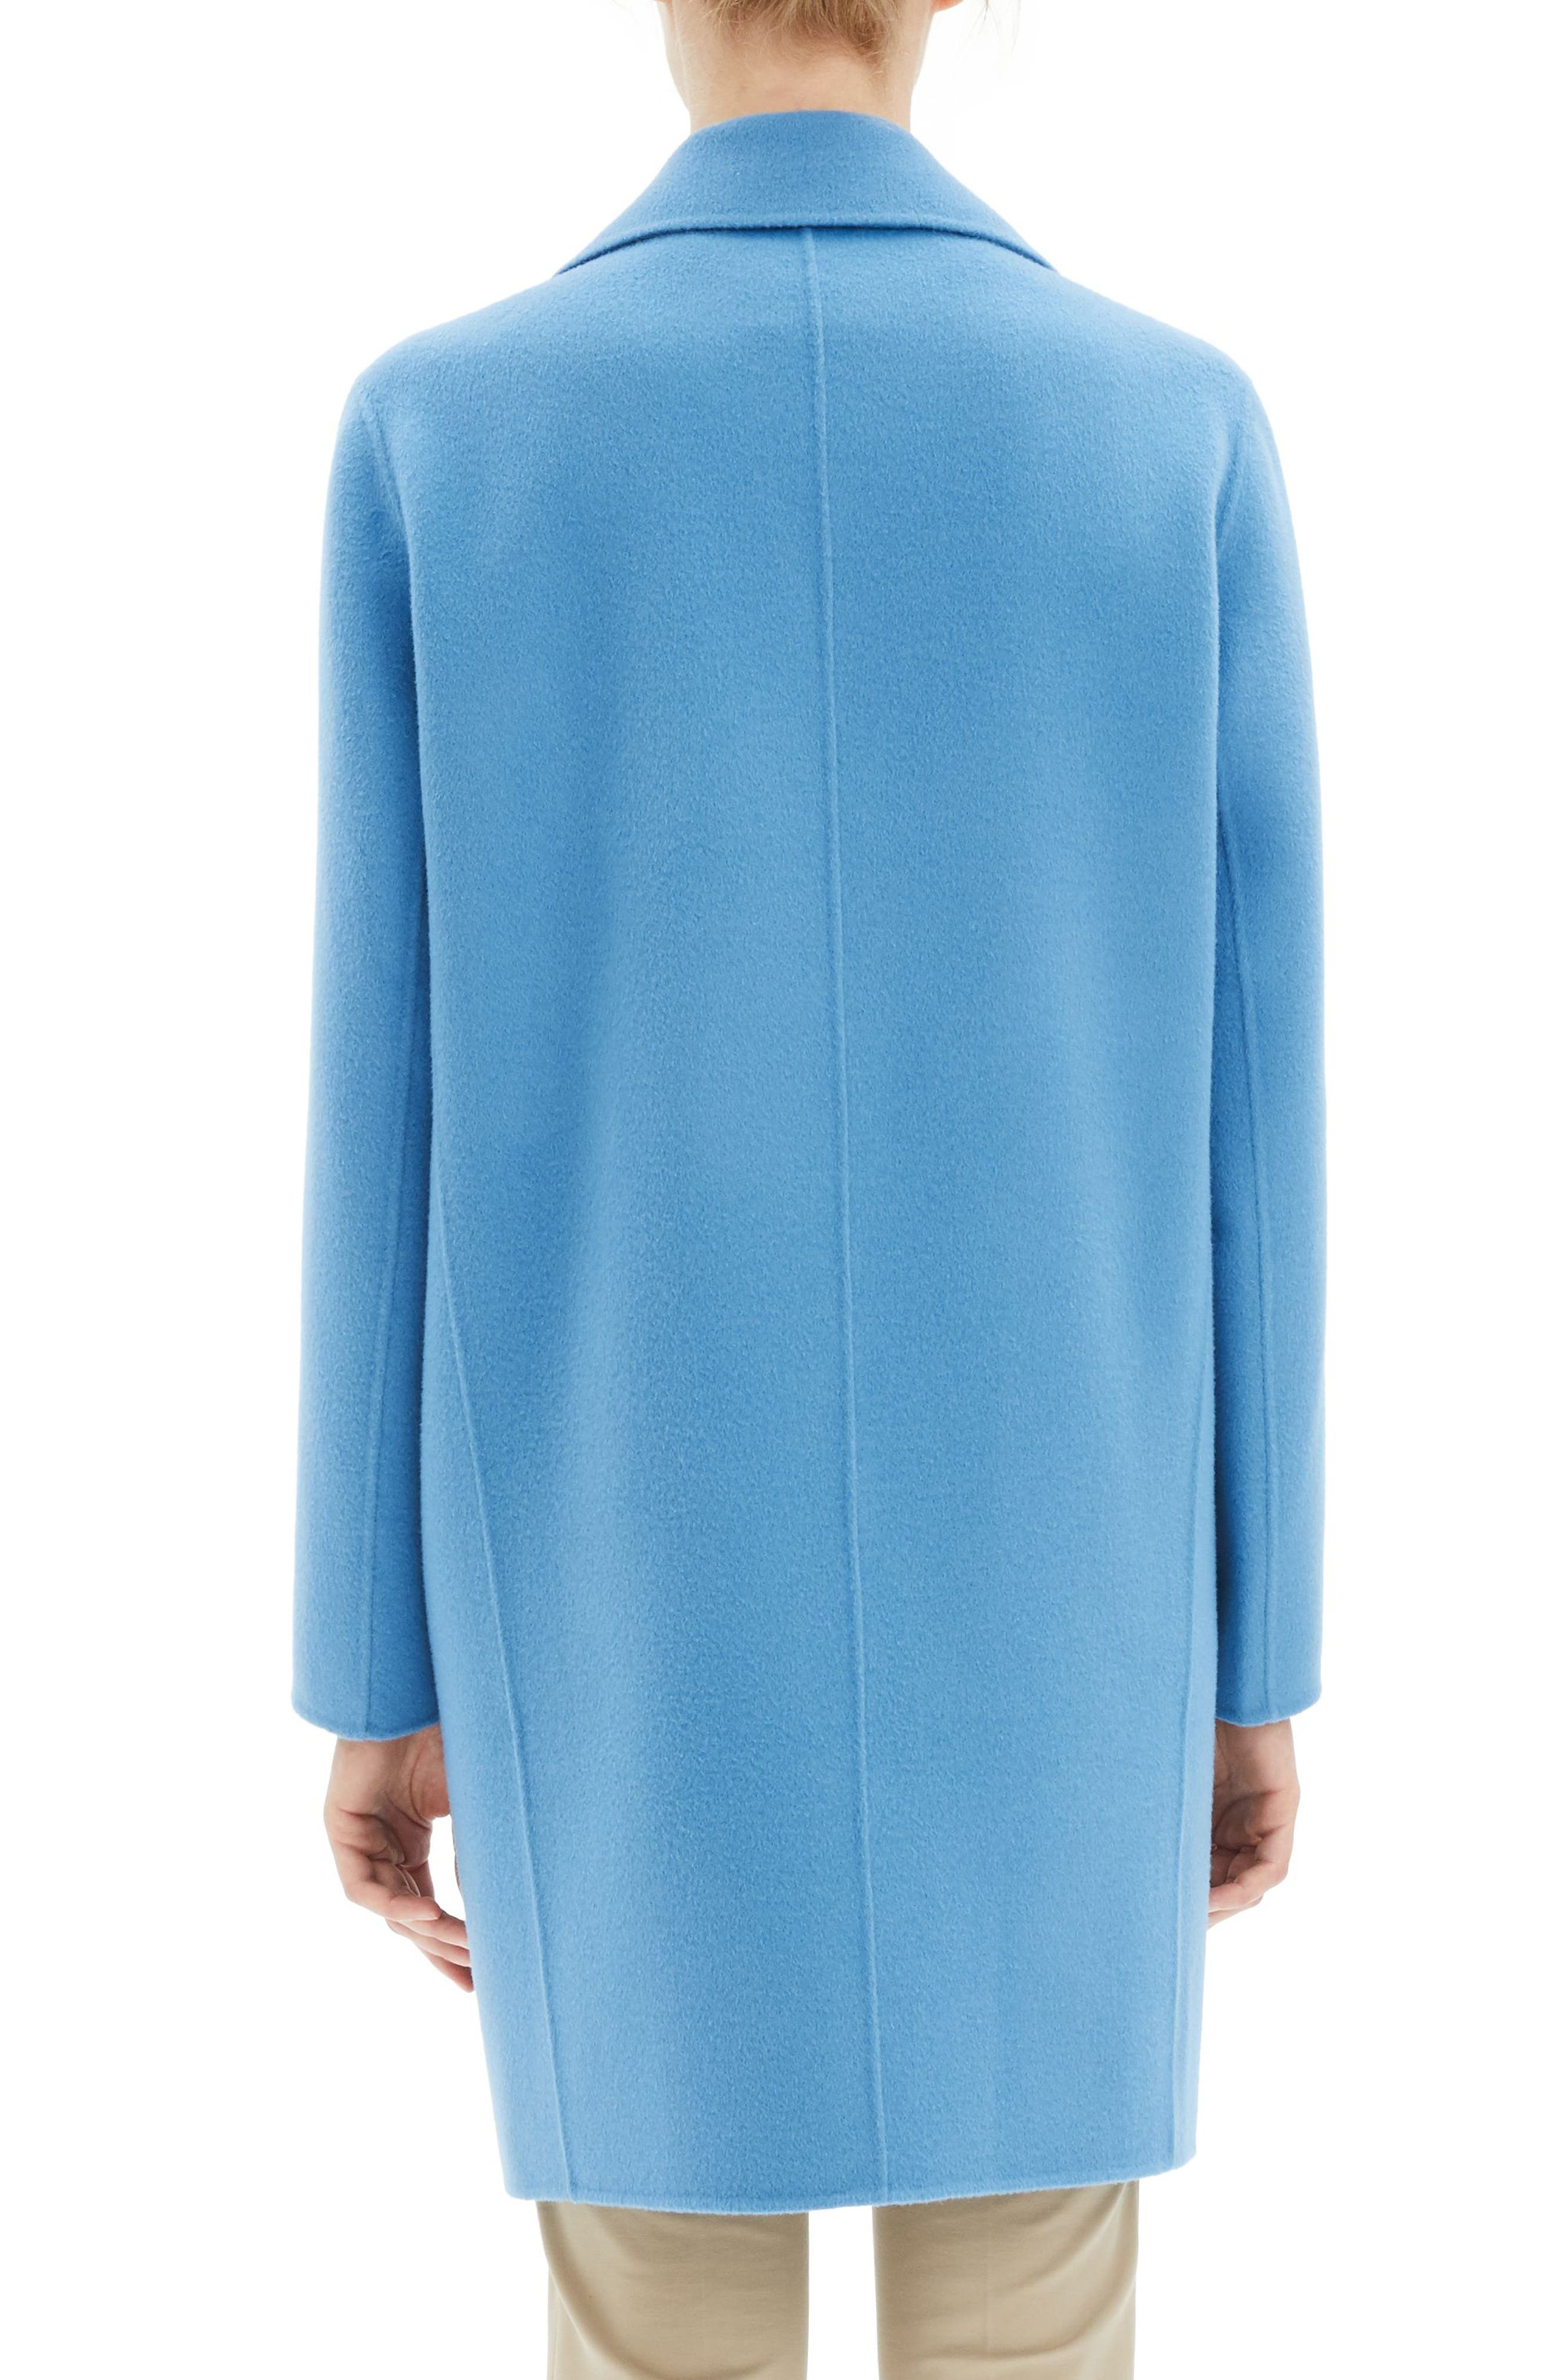 THEORY, Wool & Cashmere Boy Coat, Alternate thumbnail 2, color, 488